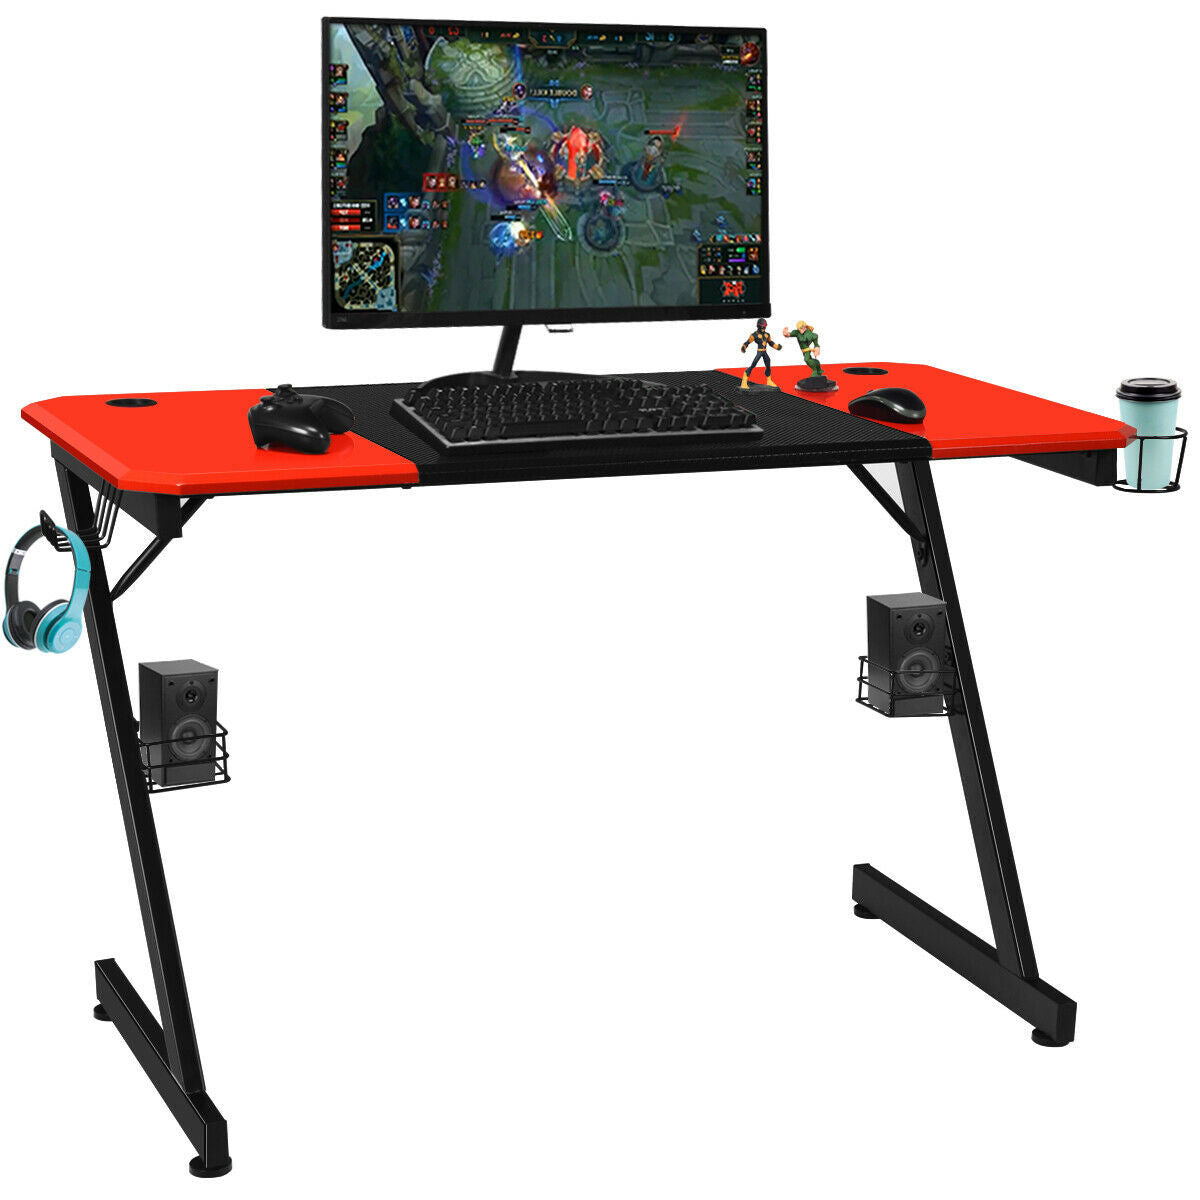 OfficeMateZ™ Gaming Computer Desk Large Carbon Fiber Surface Z Shape Design